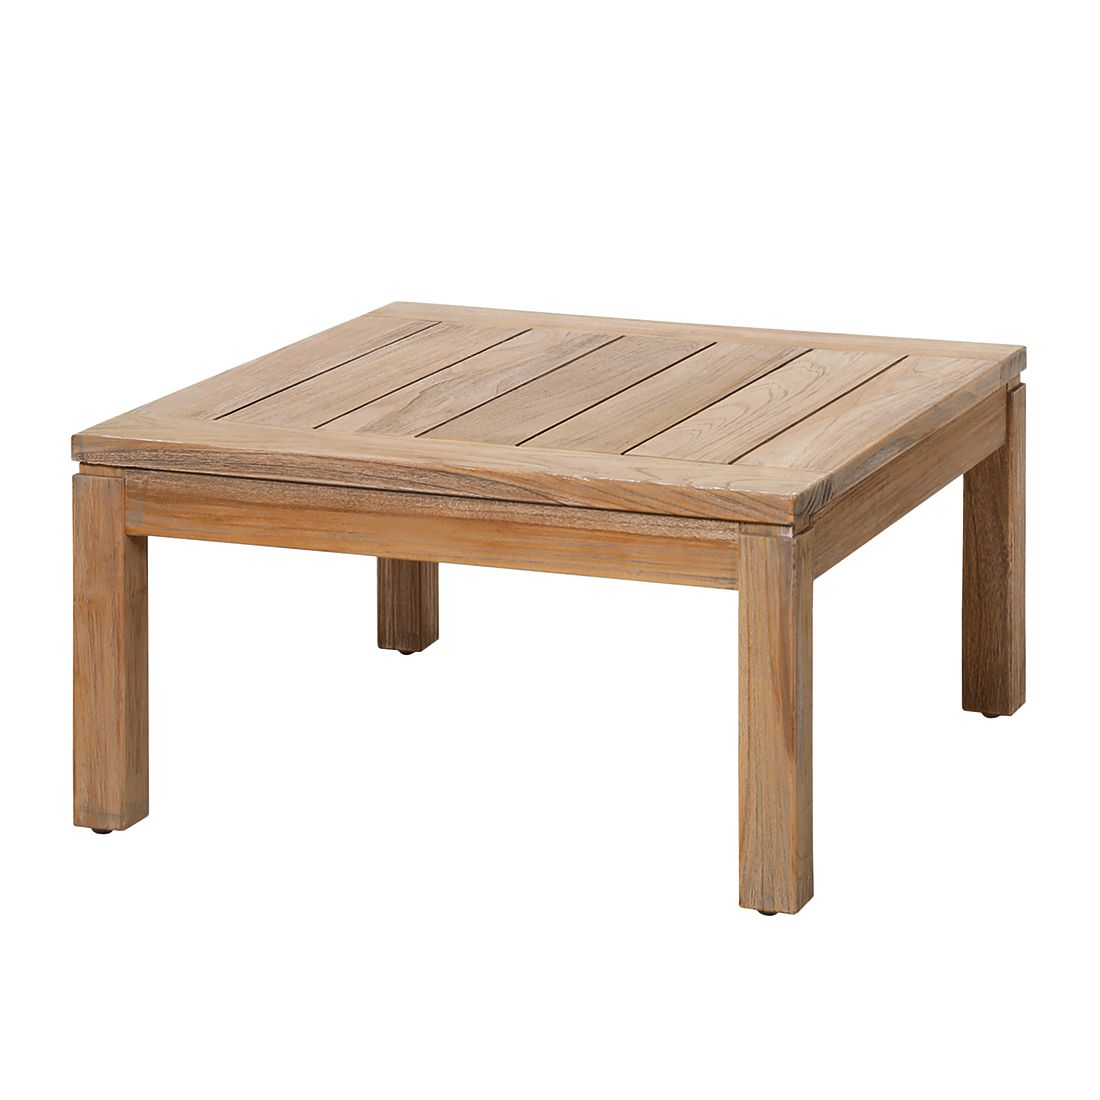 Table de jardin Moretti II - Teck massif Gris, Best Freizeitmöbel